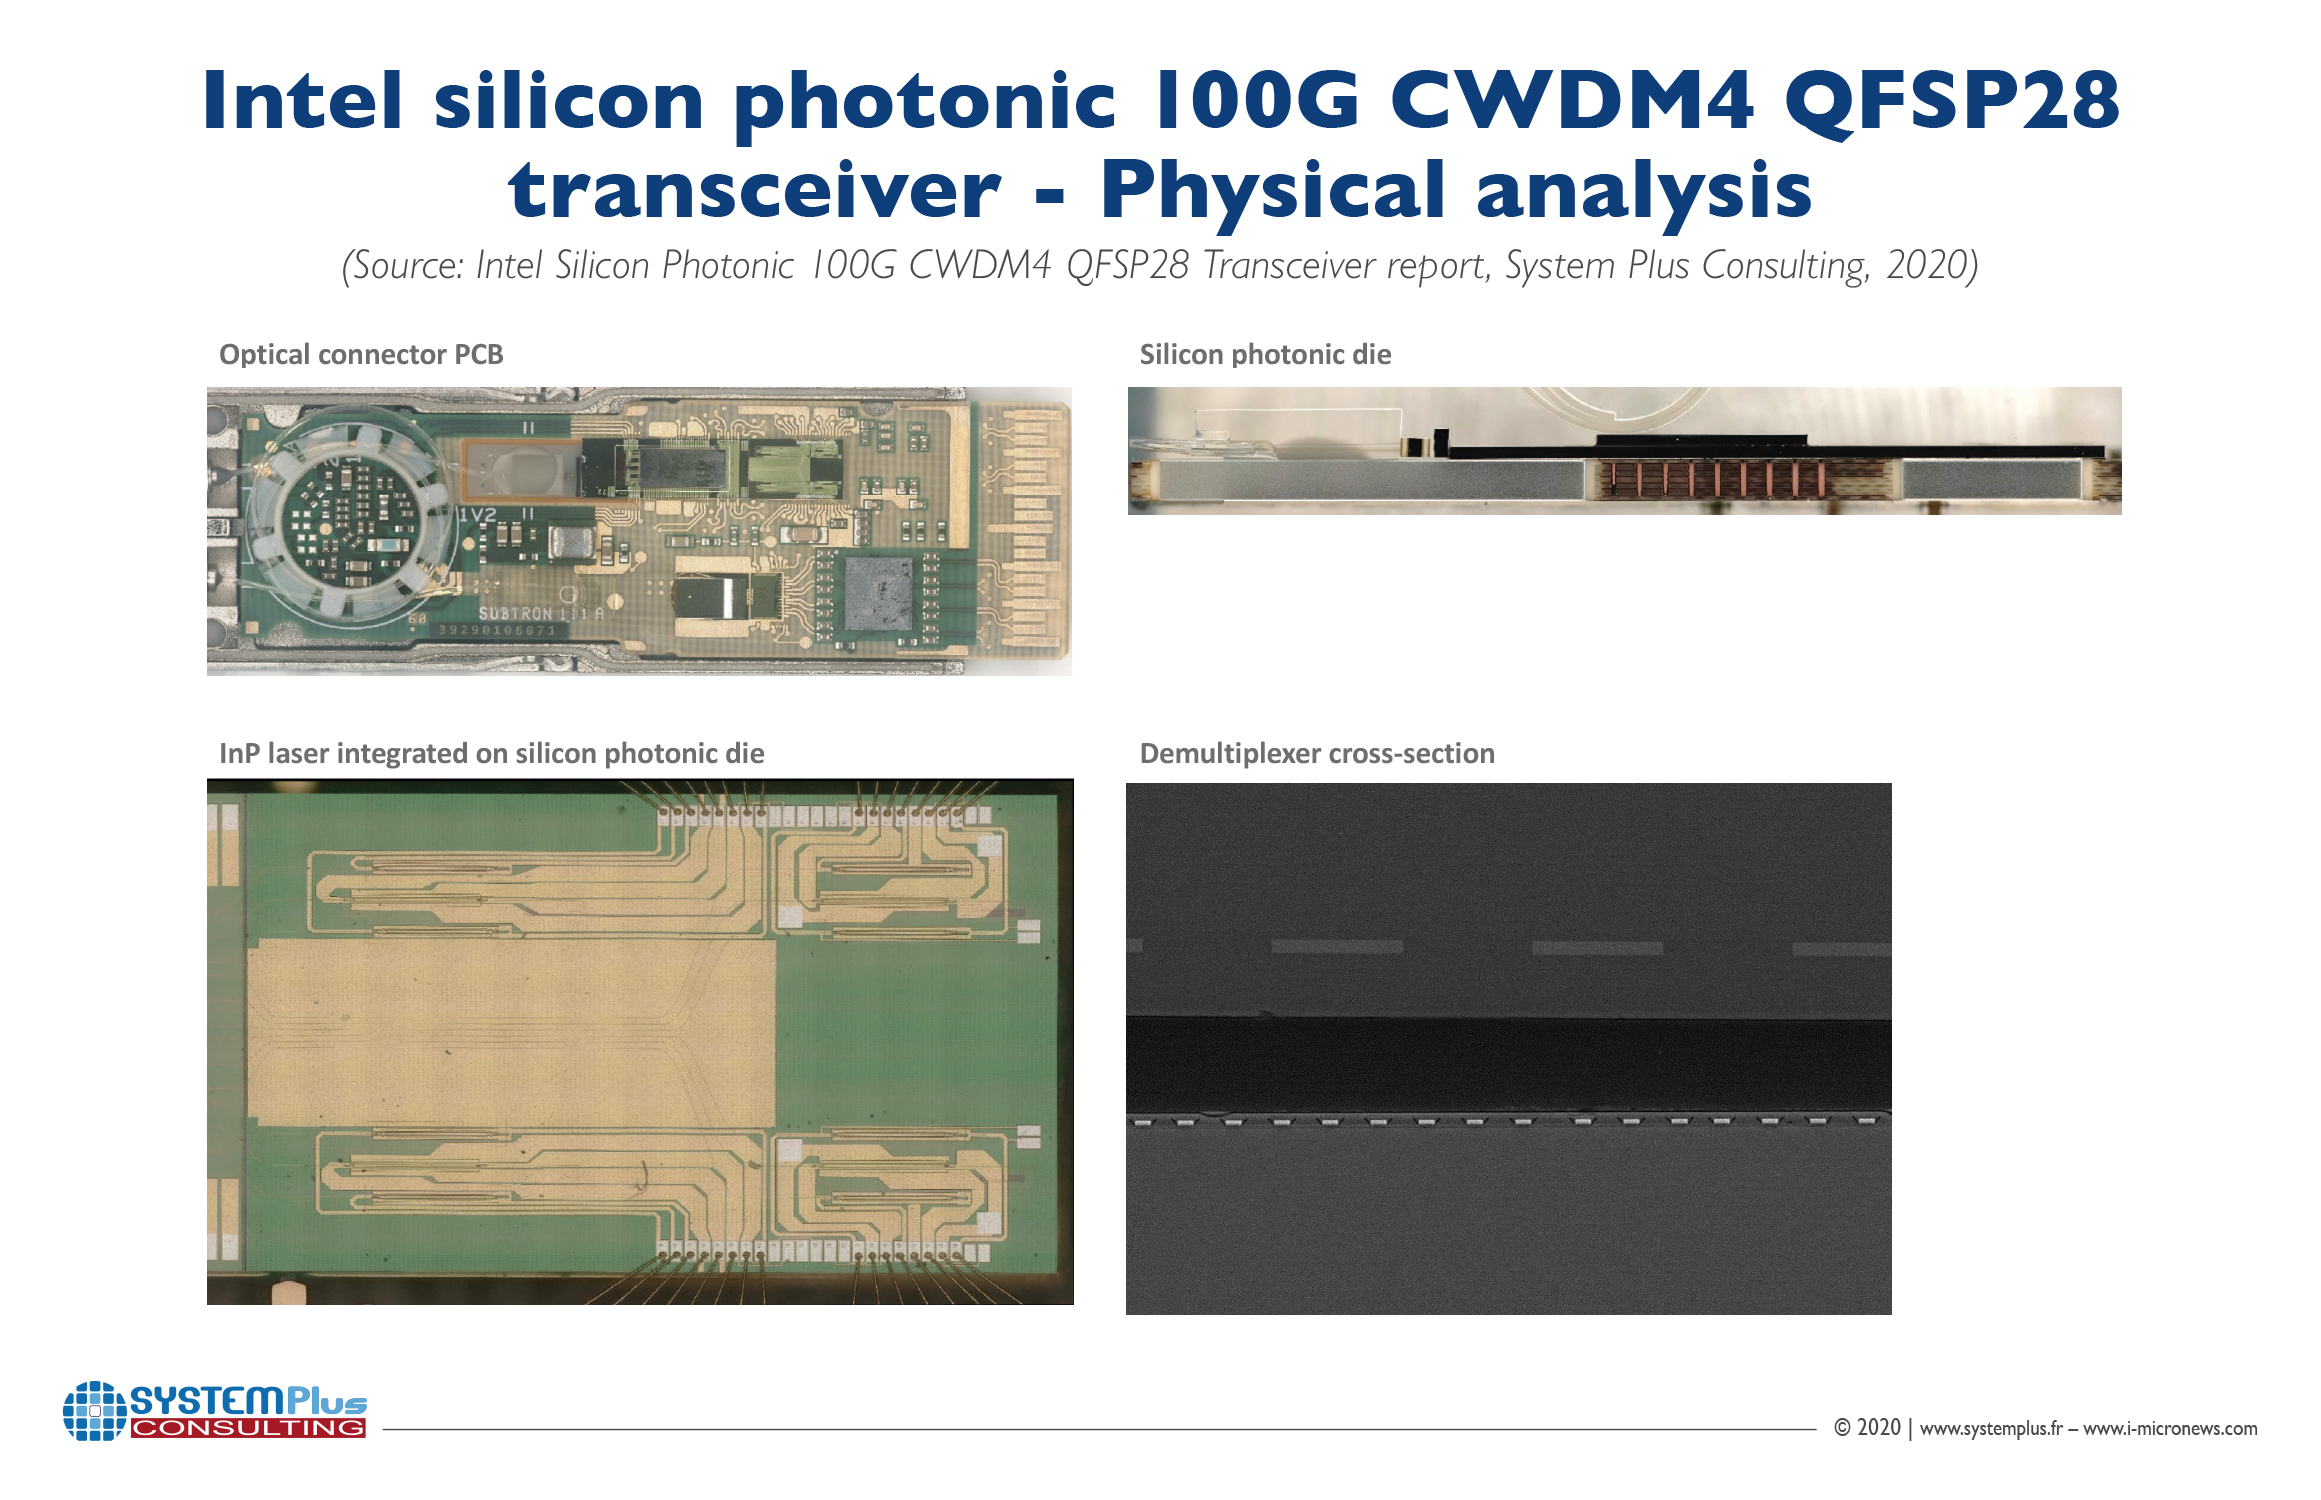 ILLUS_INTEL_SILICON_PHOTONICS_Transceivers_SYSTEMPLUSCONSULTING_May2020